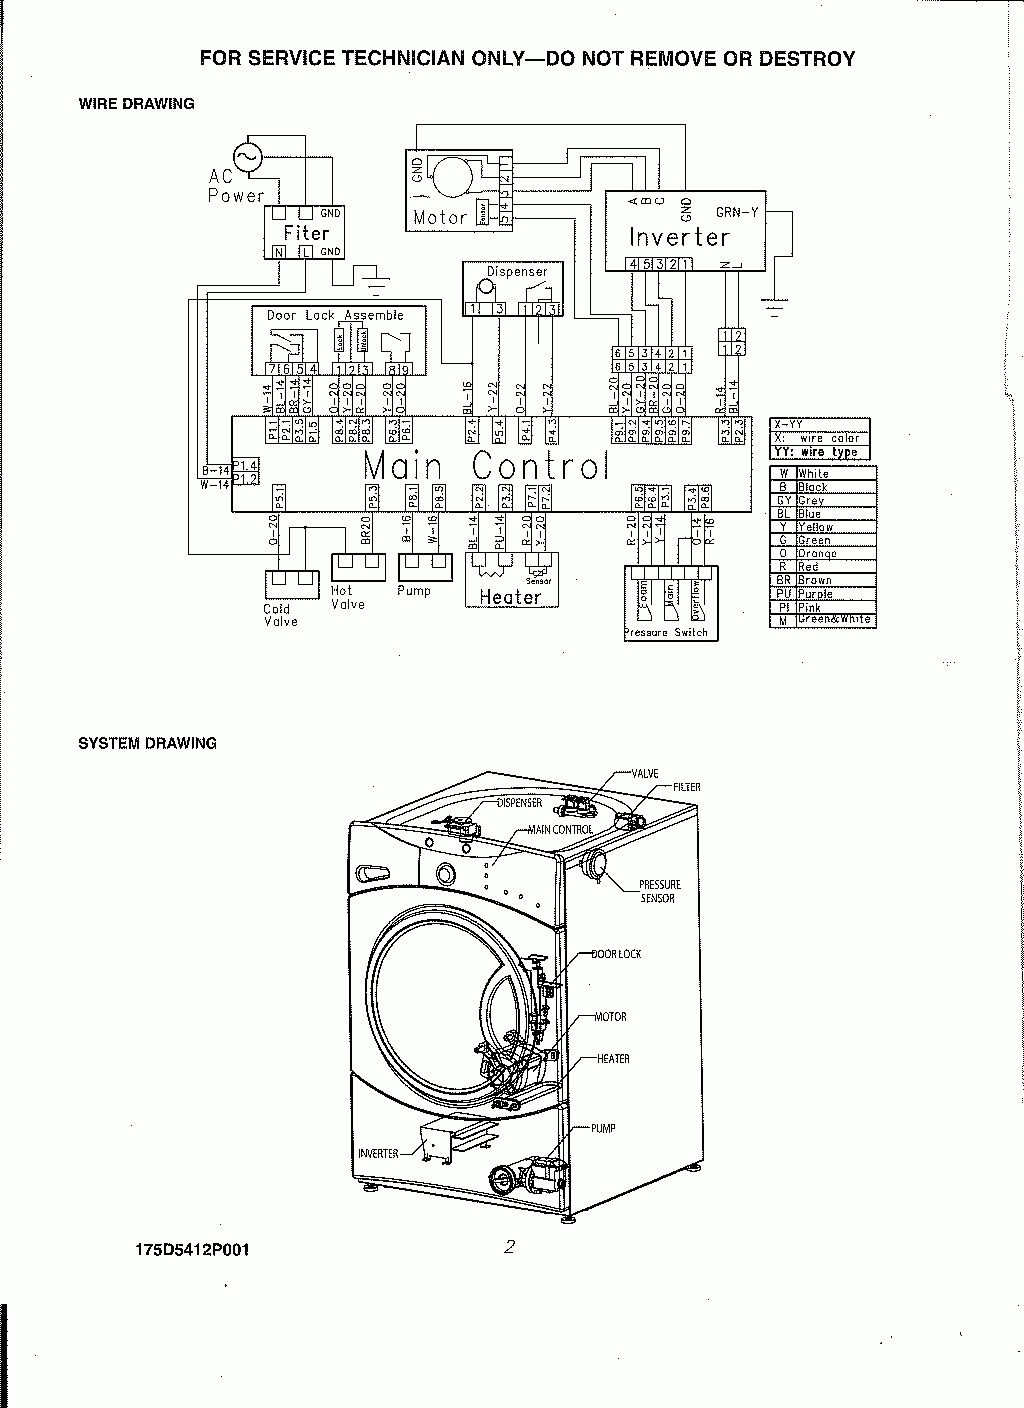 ge washer motor wiring diagram reflection ray ks3 washing machine schematic free engine image for